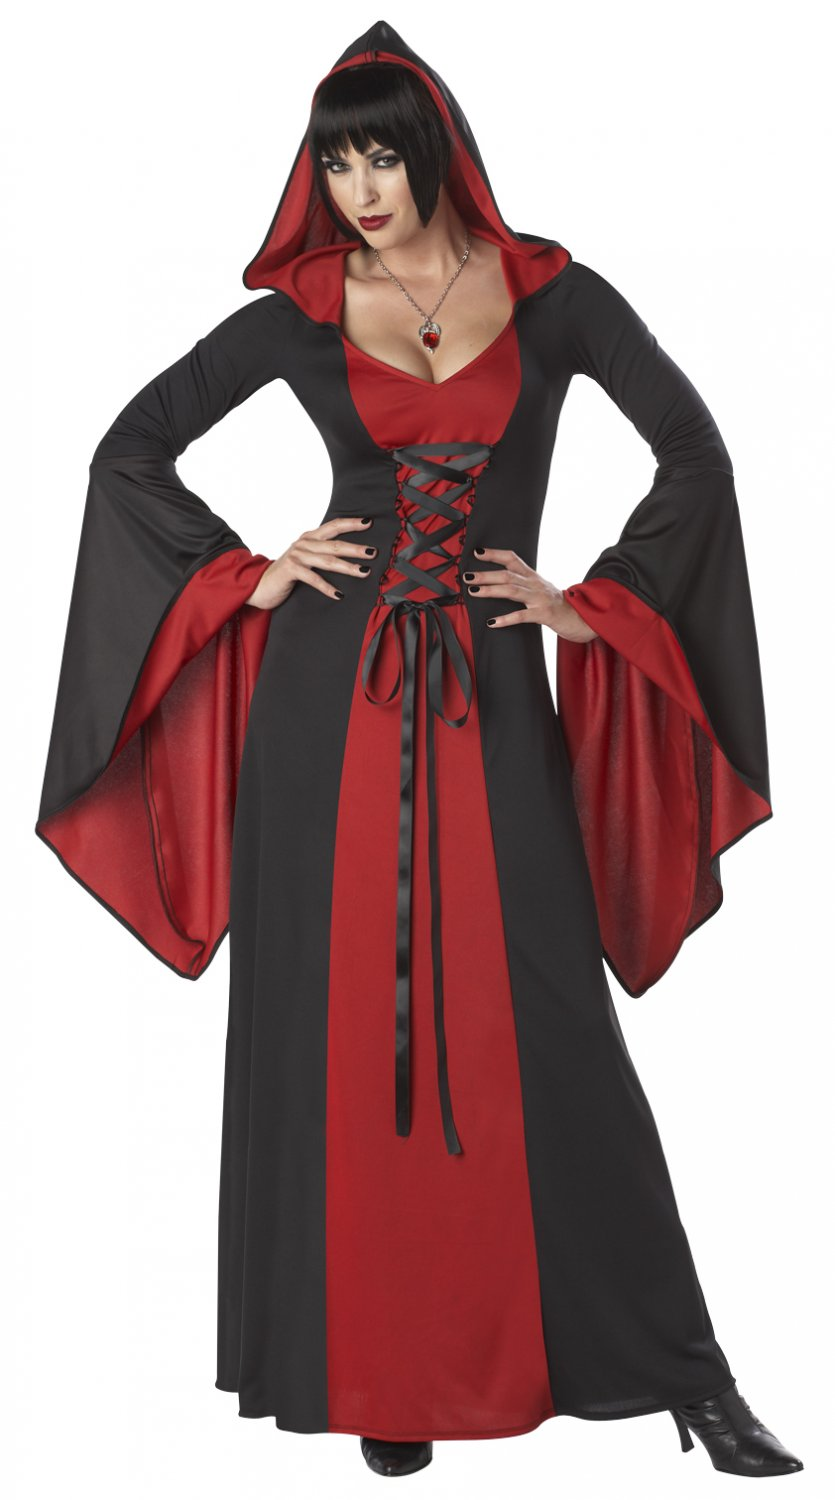 Size: Medium #01148 Handmaiden Gothic Vampire Deluxe Hooded Robe Adult Costume